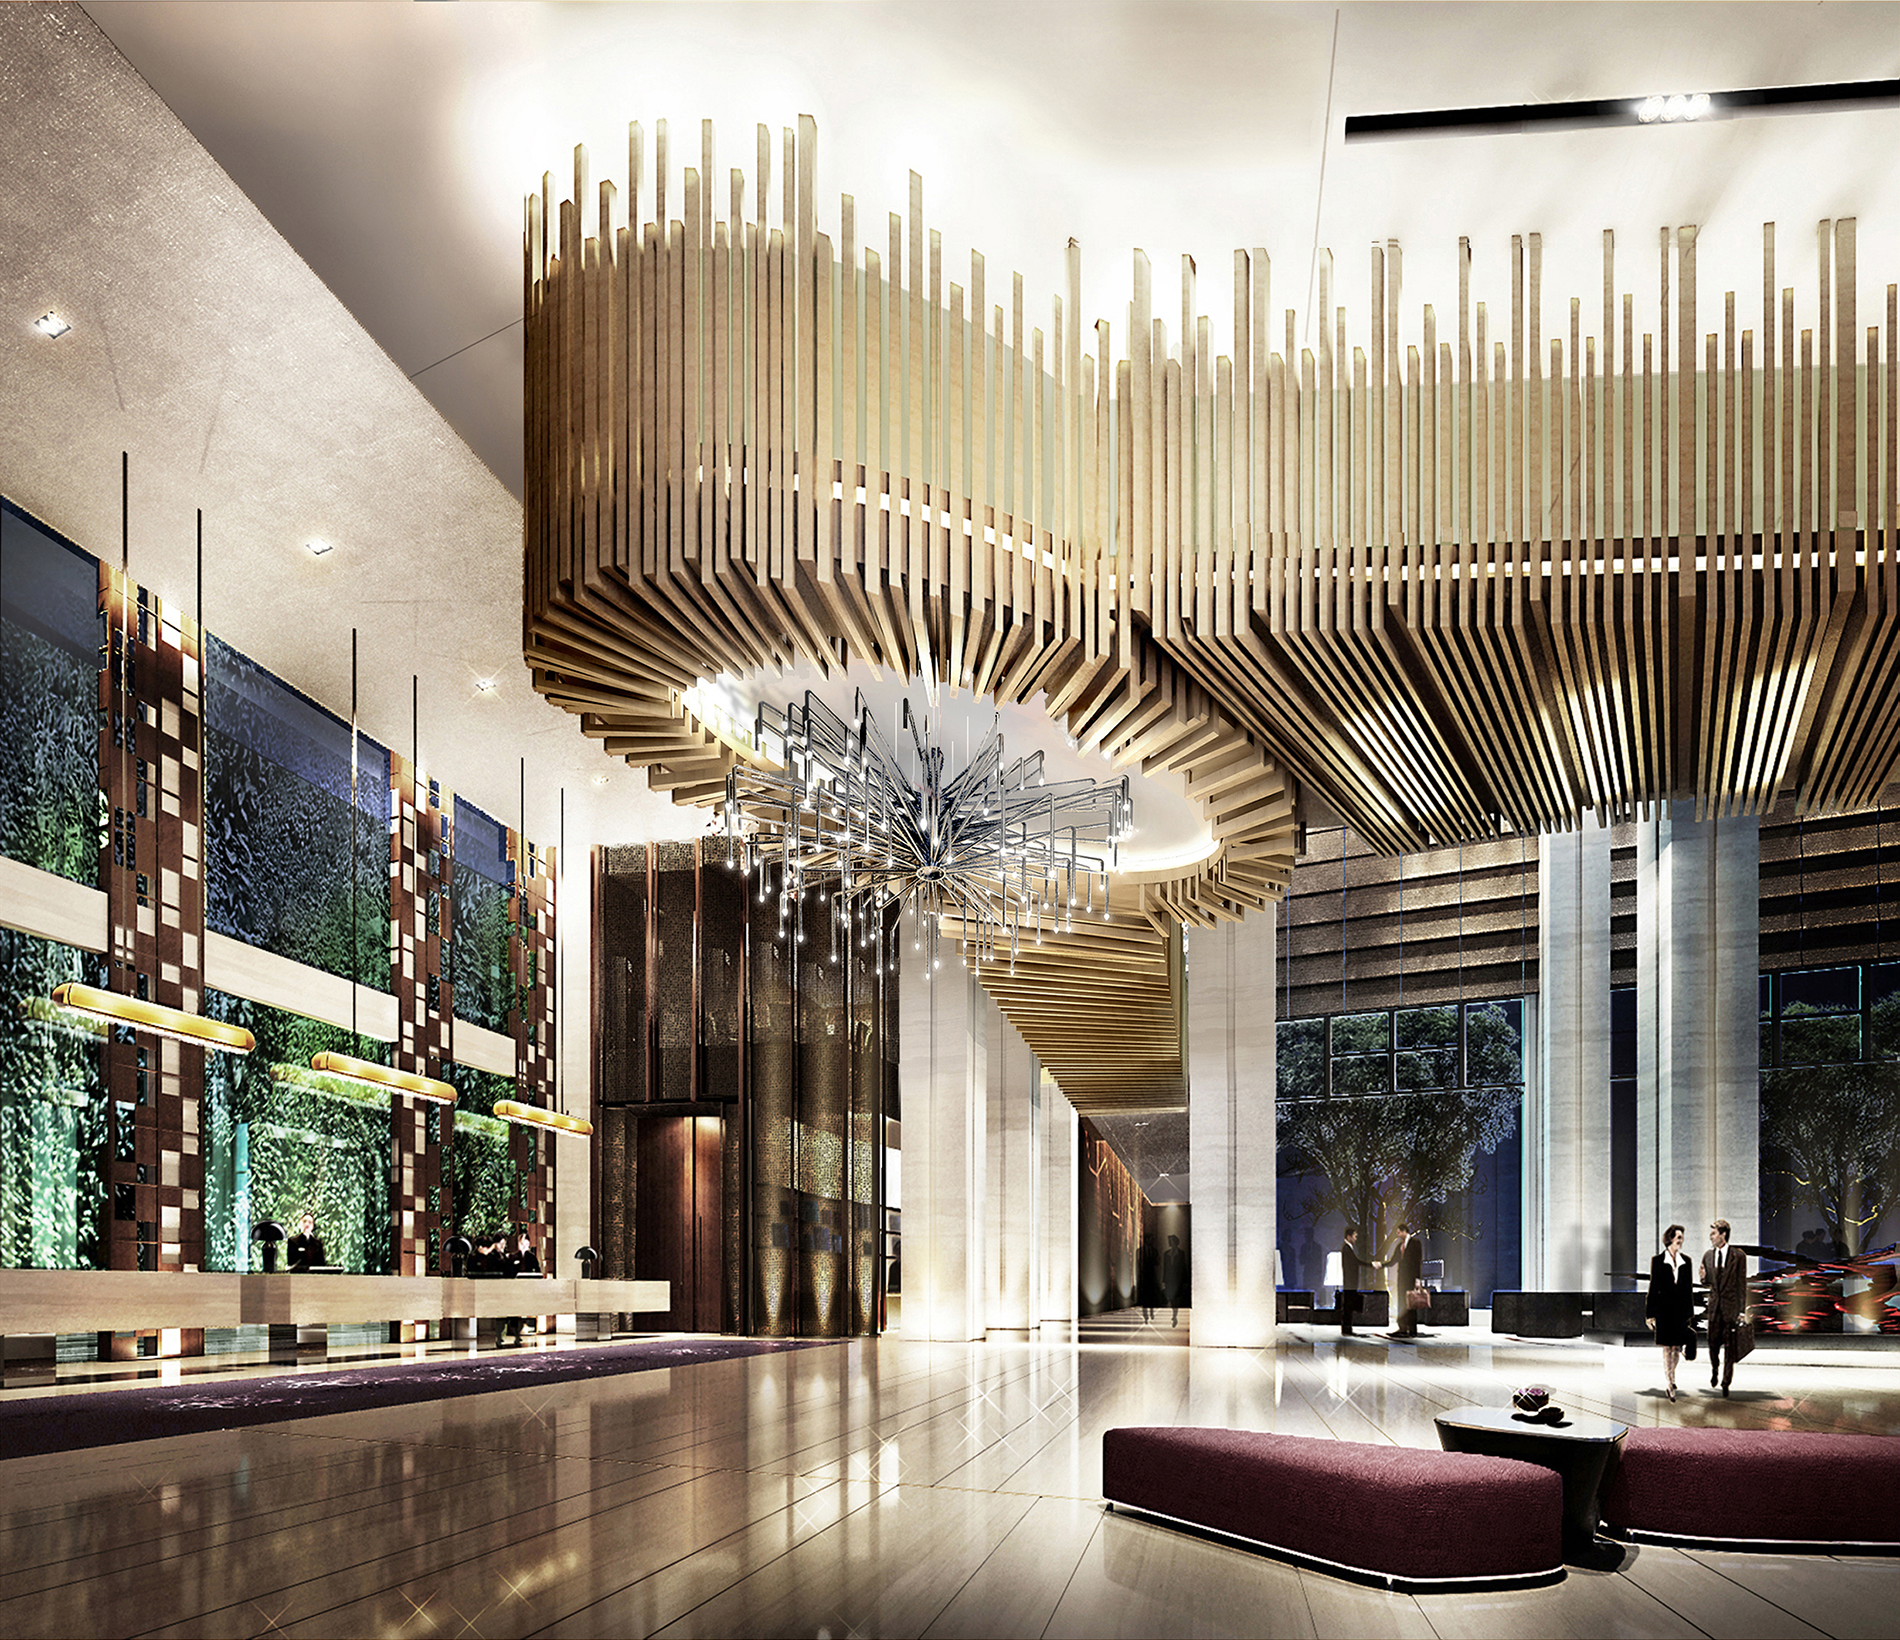 New langham place hotel opens in xiamen china for New hotel design